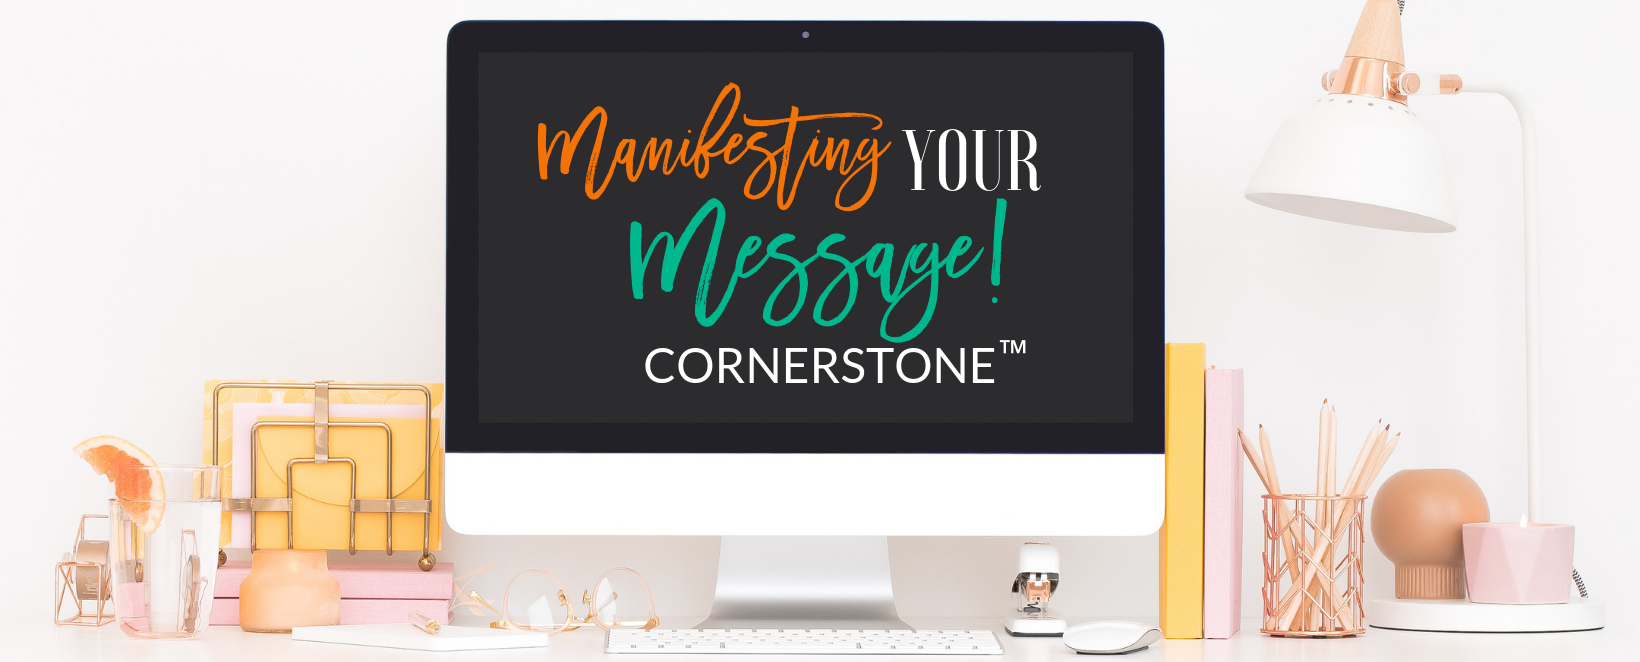 Mainfesting Your Message Cornerstone.png